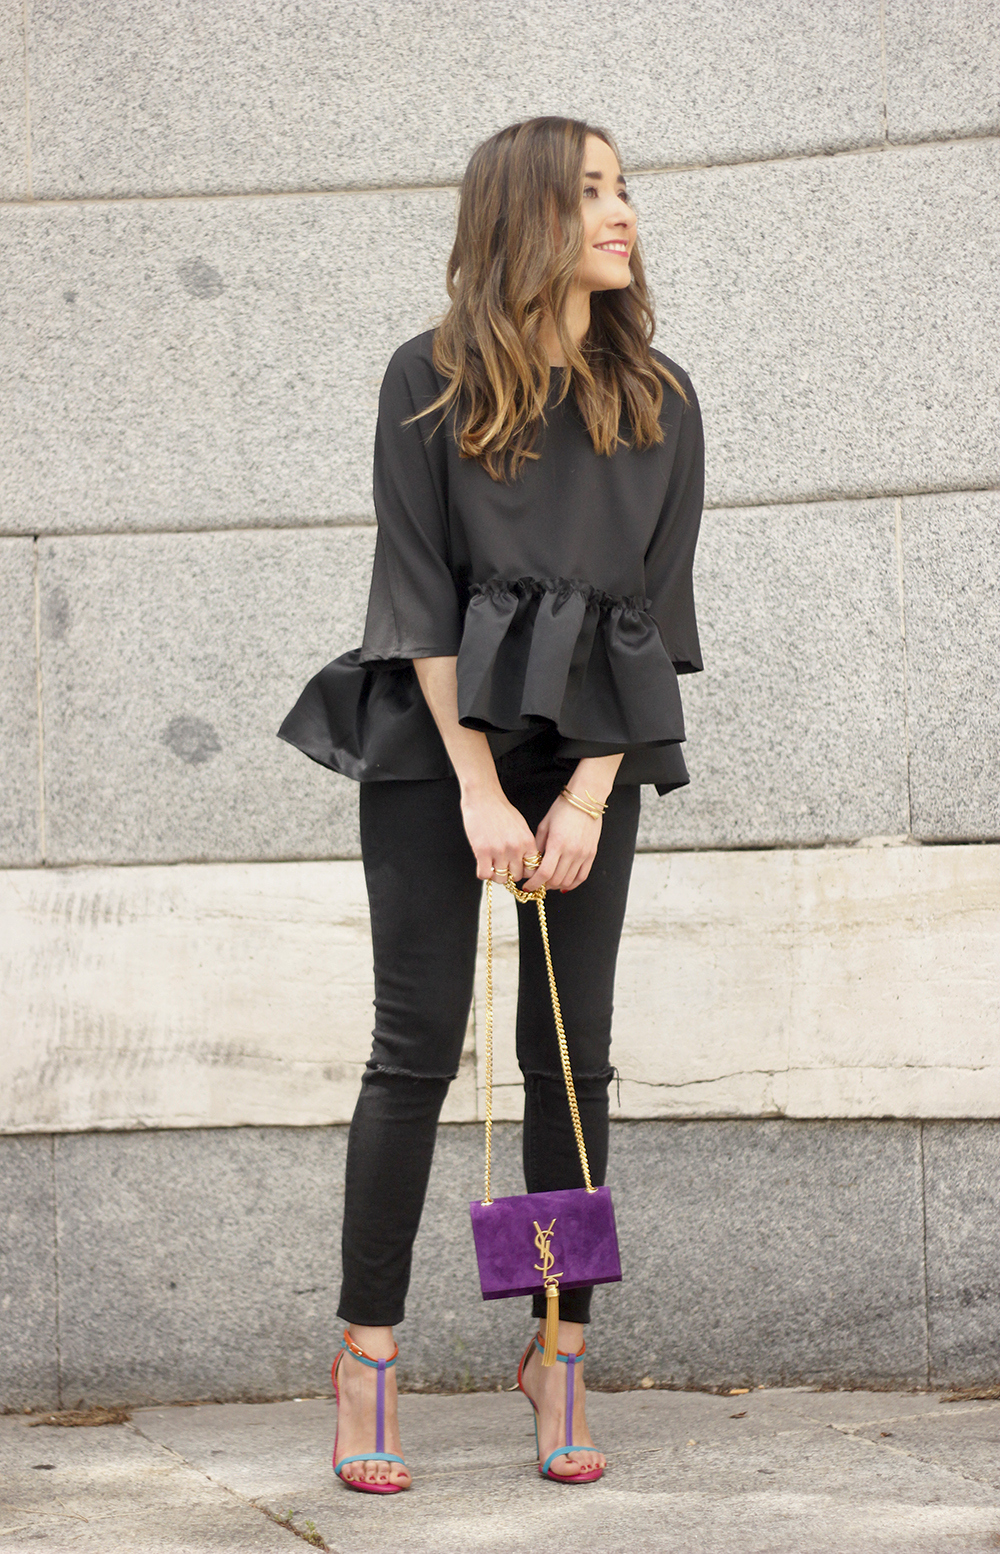 black top with a ruffle Carolina Herrera Sandals YSL bag accessories outfit style14